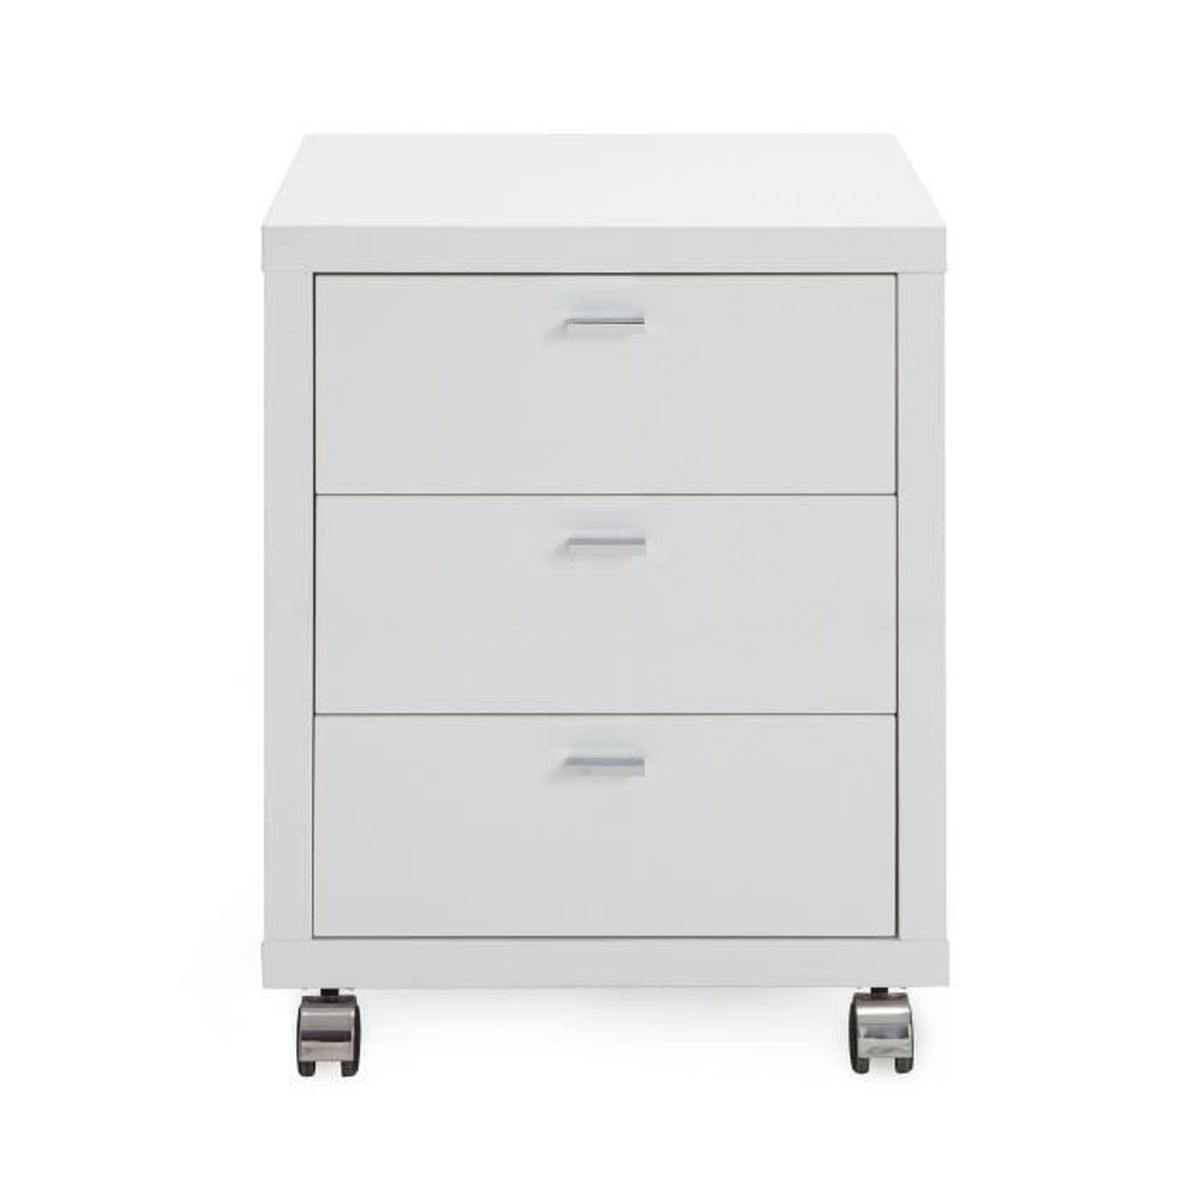 oslo caisson roulettes 3 tiroirs h62m blanc achat. Black Bedroom Furniture Sets. Home Design Ideas